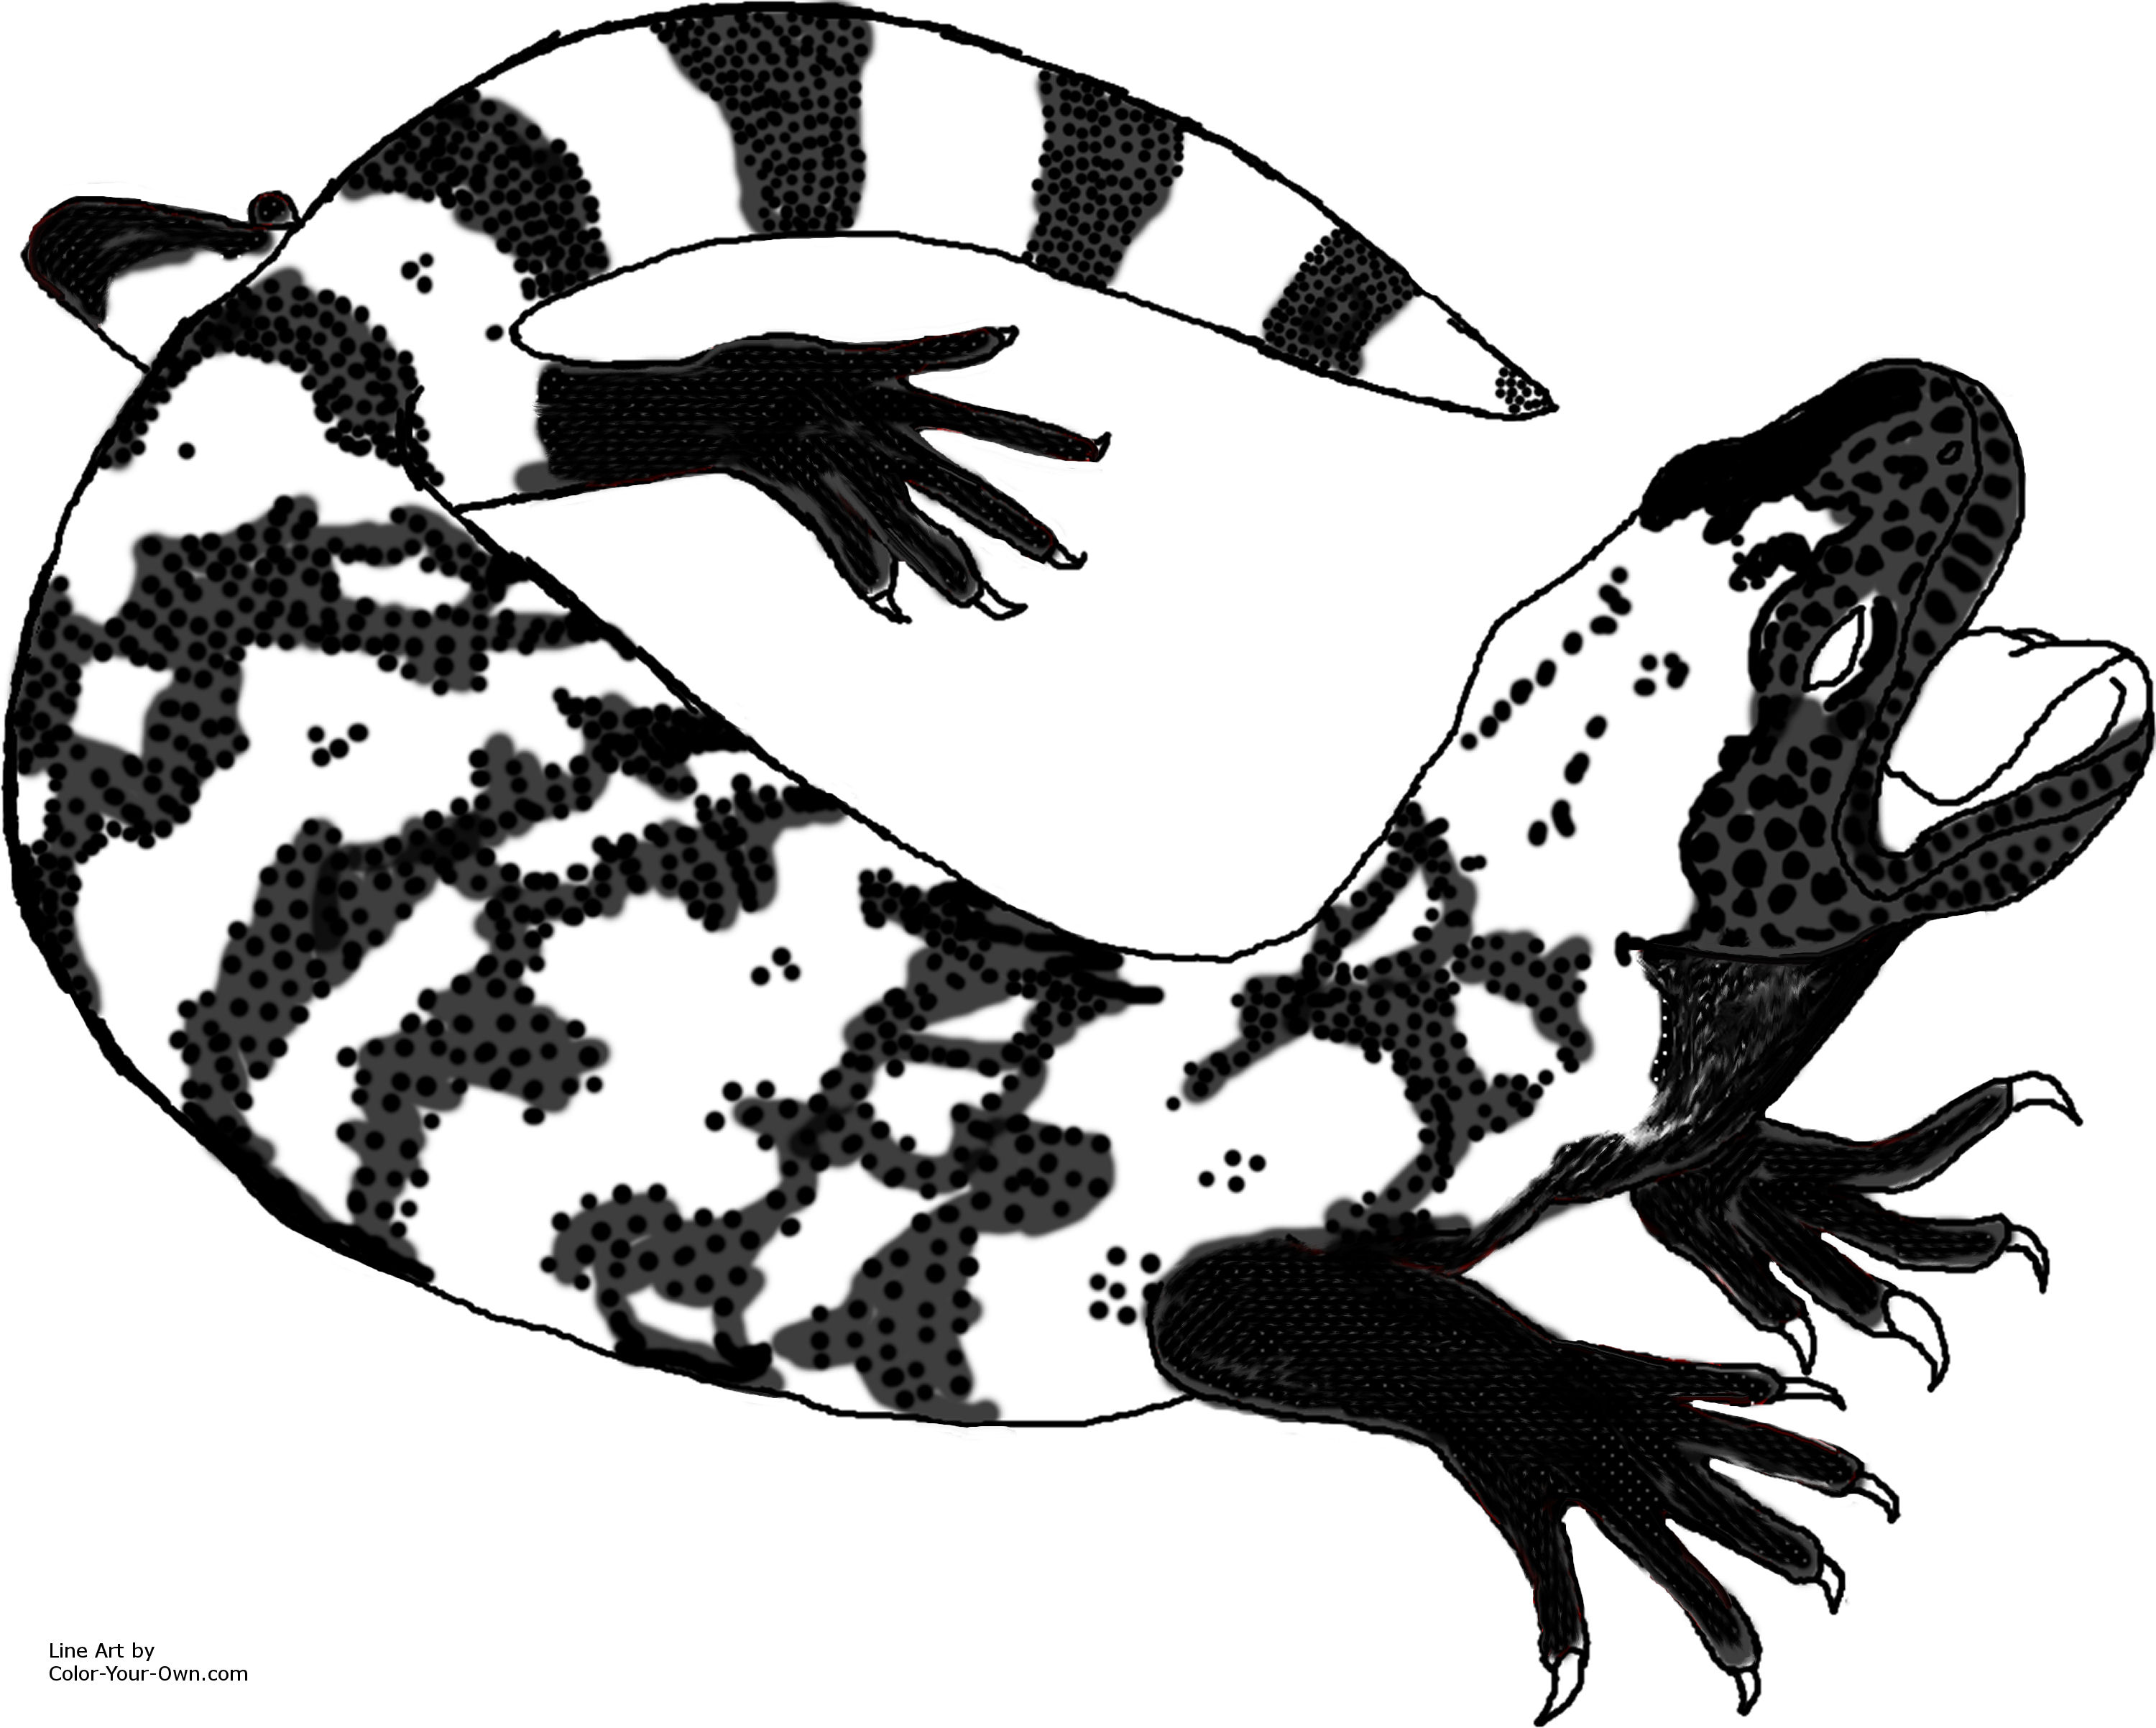 gila monster line art for the 85 x 11 printable size click here return to the coloring pages index